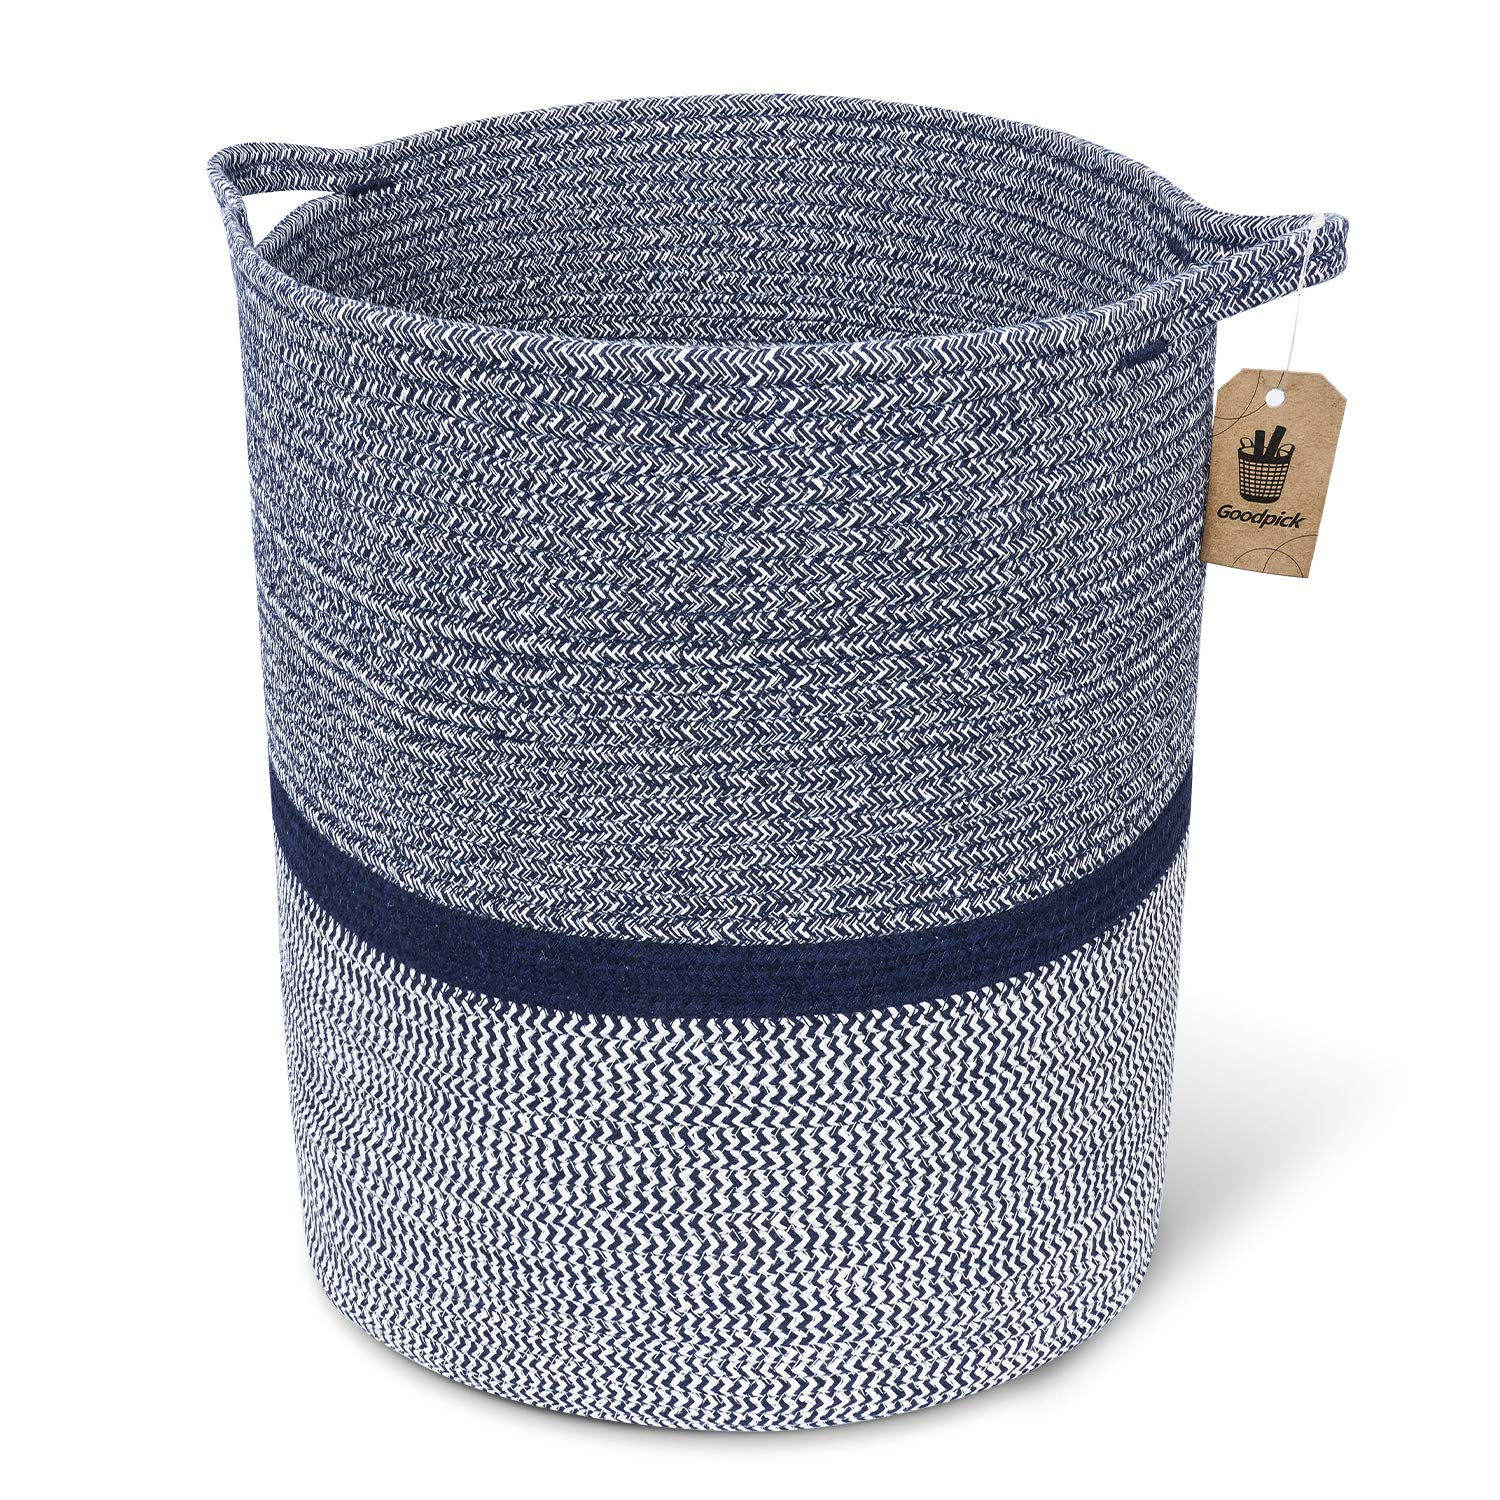 INDRESSME Large Cotton Rope Storage Basket Baby Laundry Basket Woven Baskets Blanket Basket with Handle for Diaper Toy Off White Home Decor 14.2'' x 13.4'' x 16.2'', Navy by INDRESSME